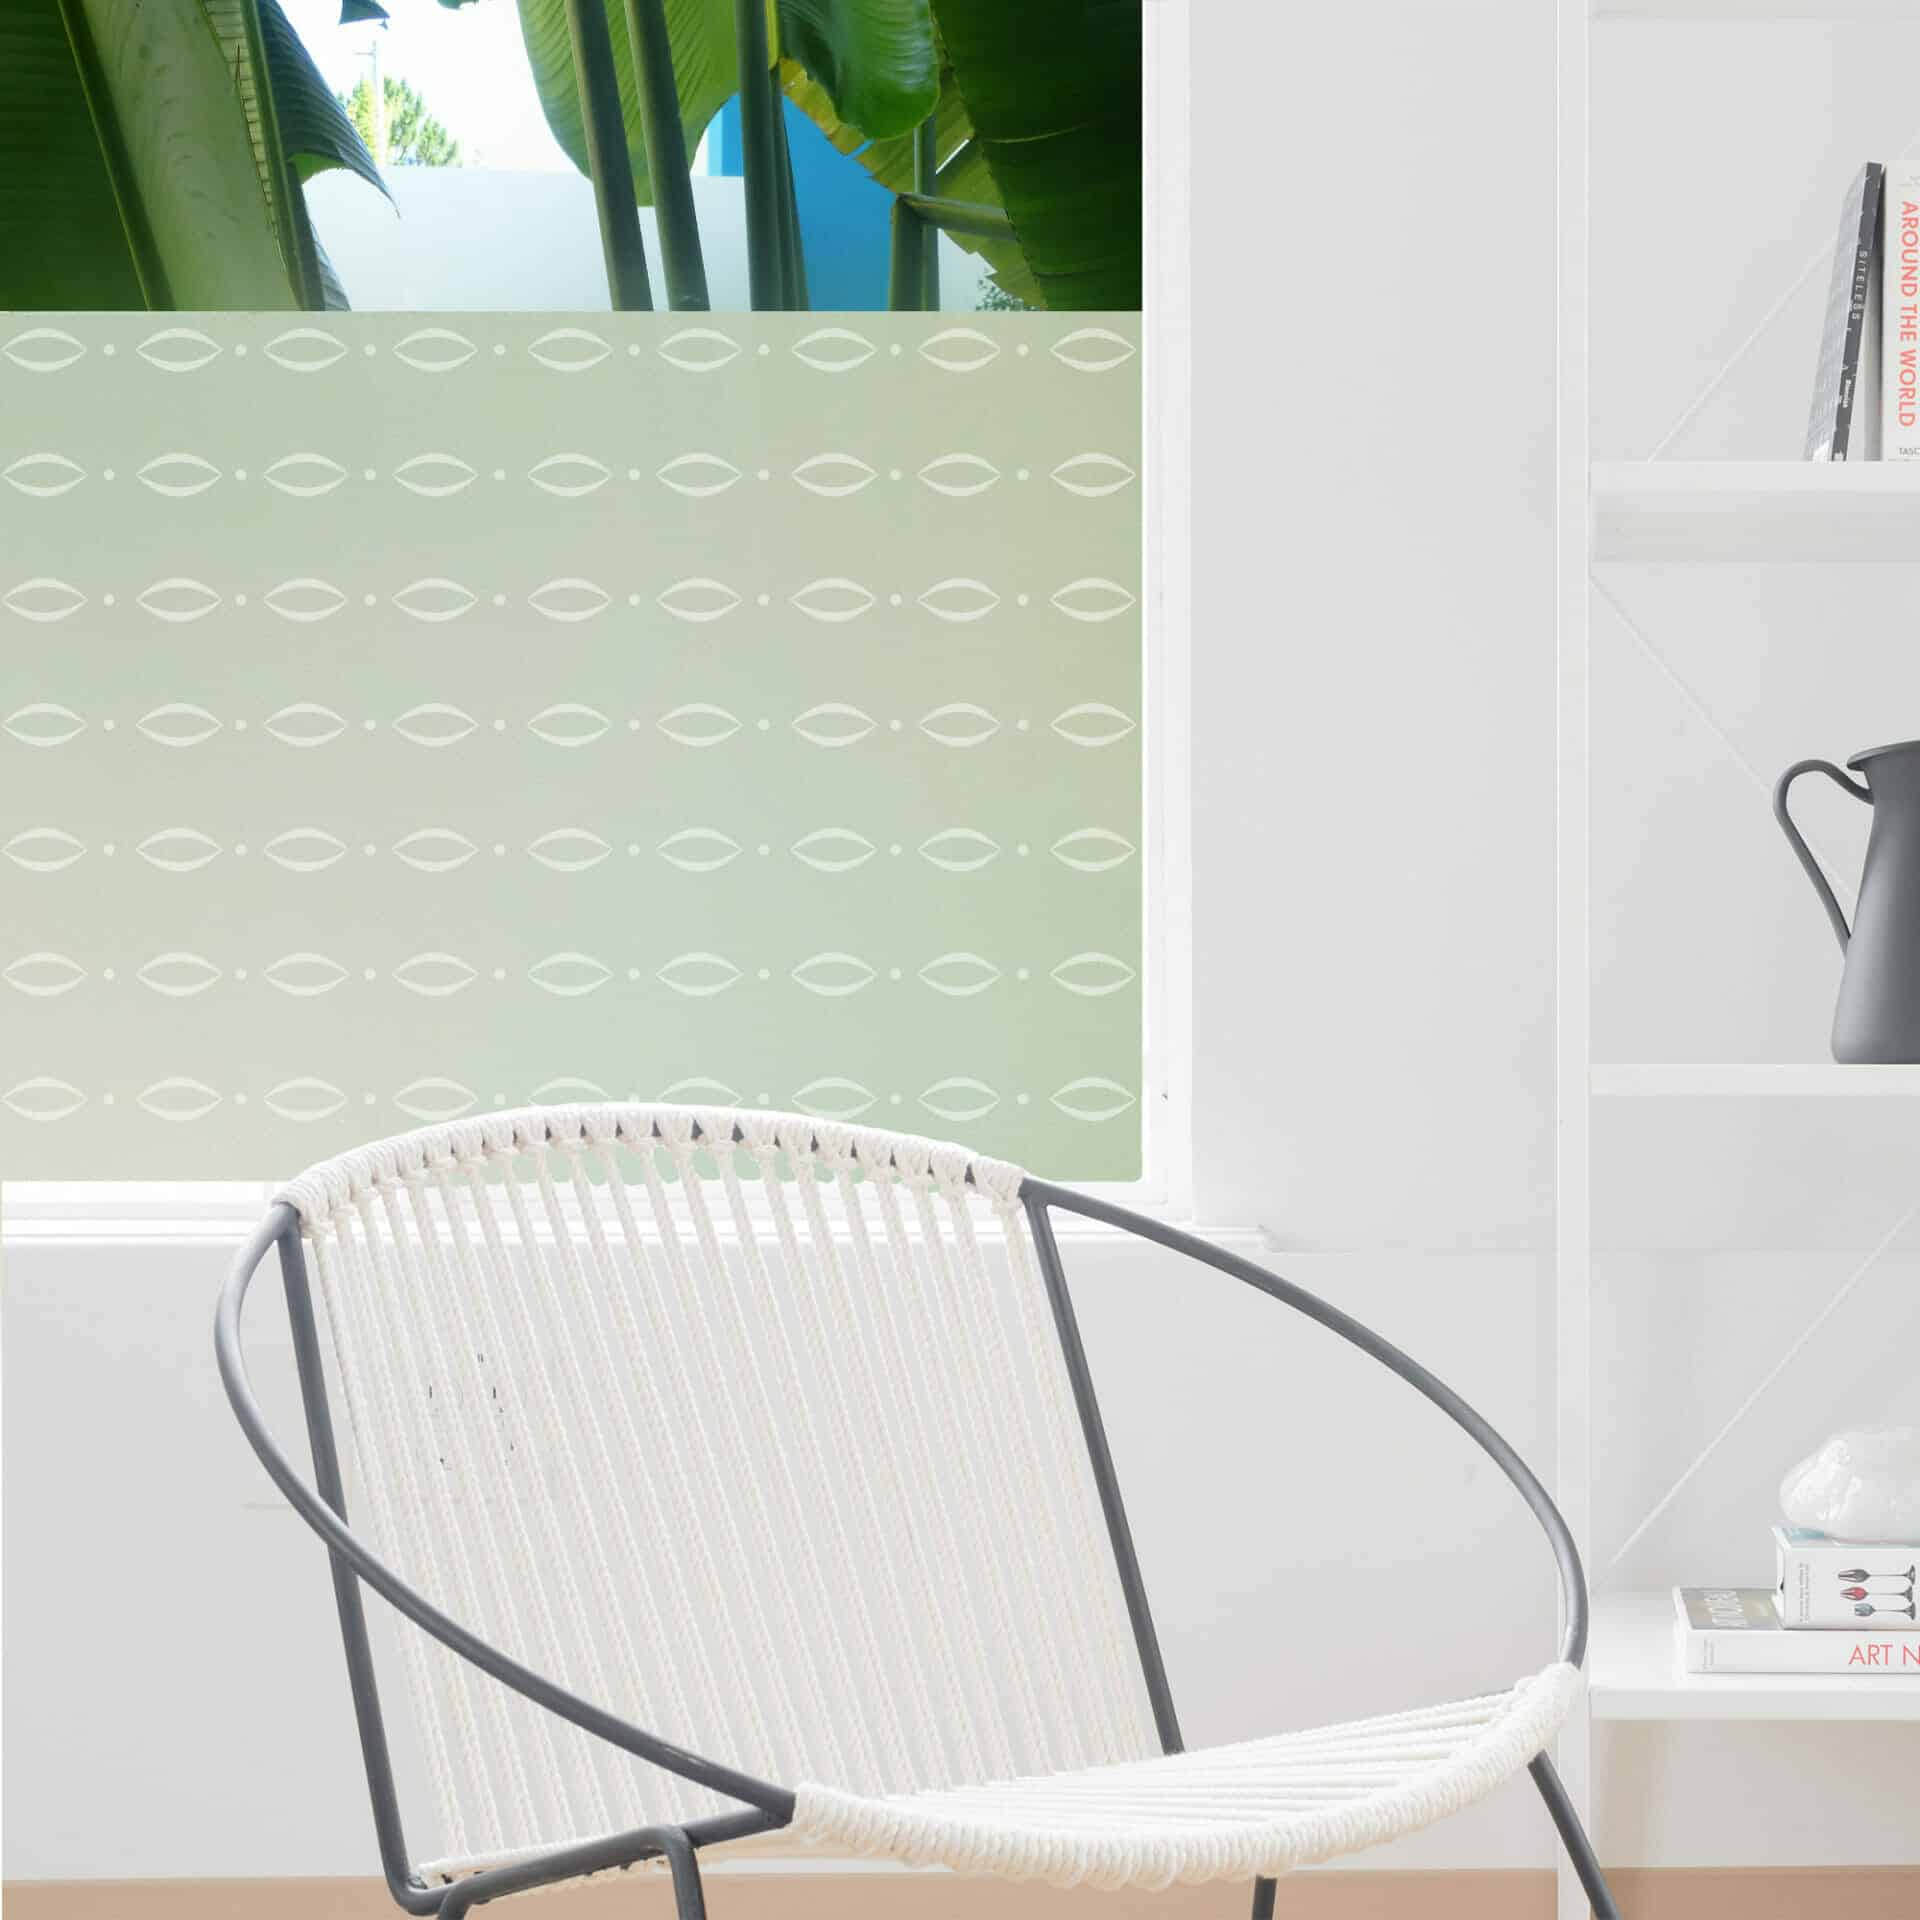 Window privacy film featuring delicate eyebrow-shaped curves and dots in linear lines.